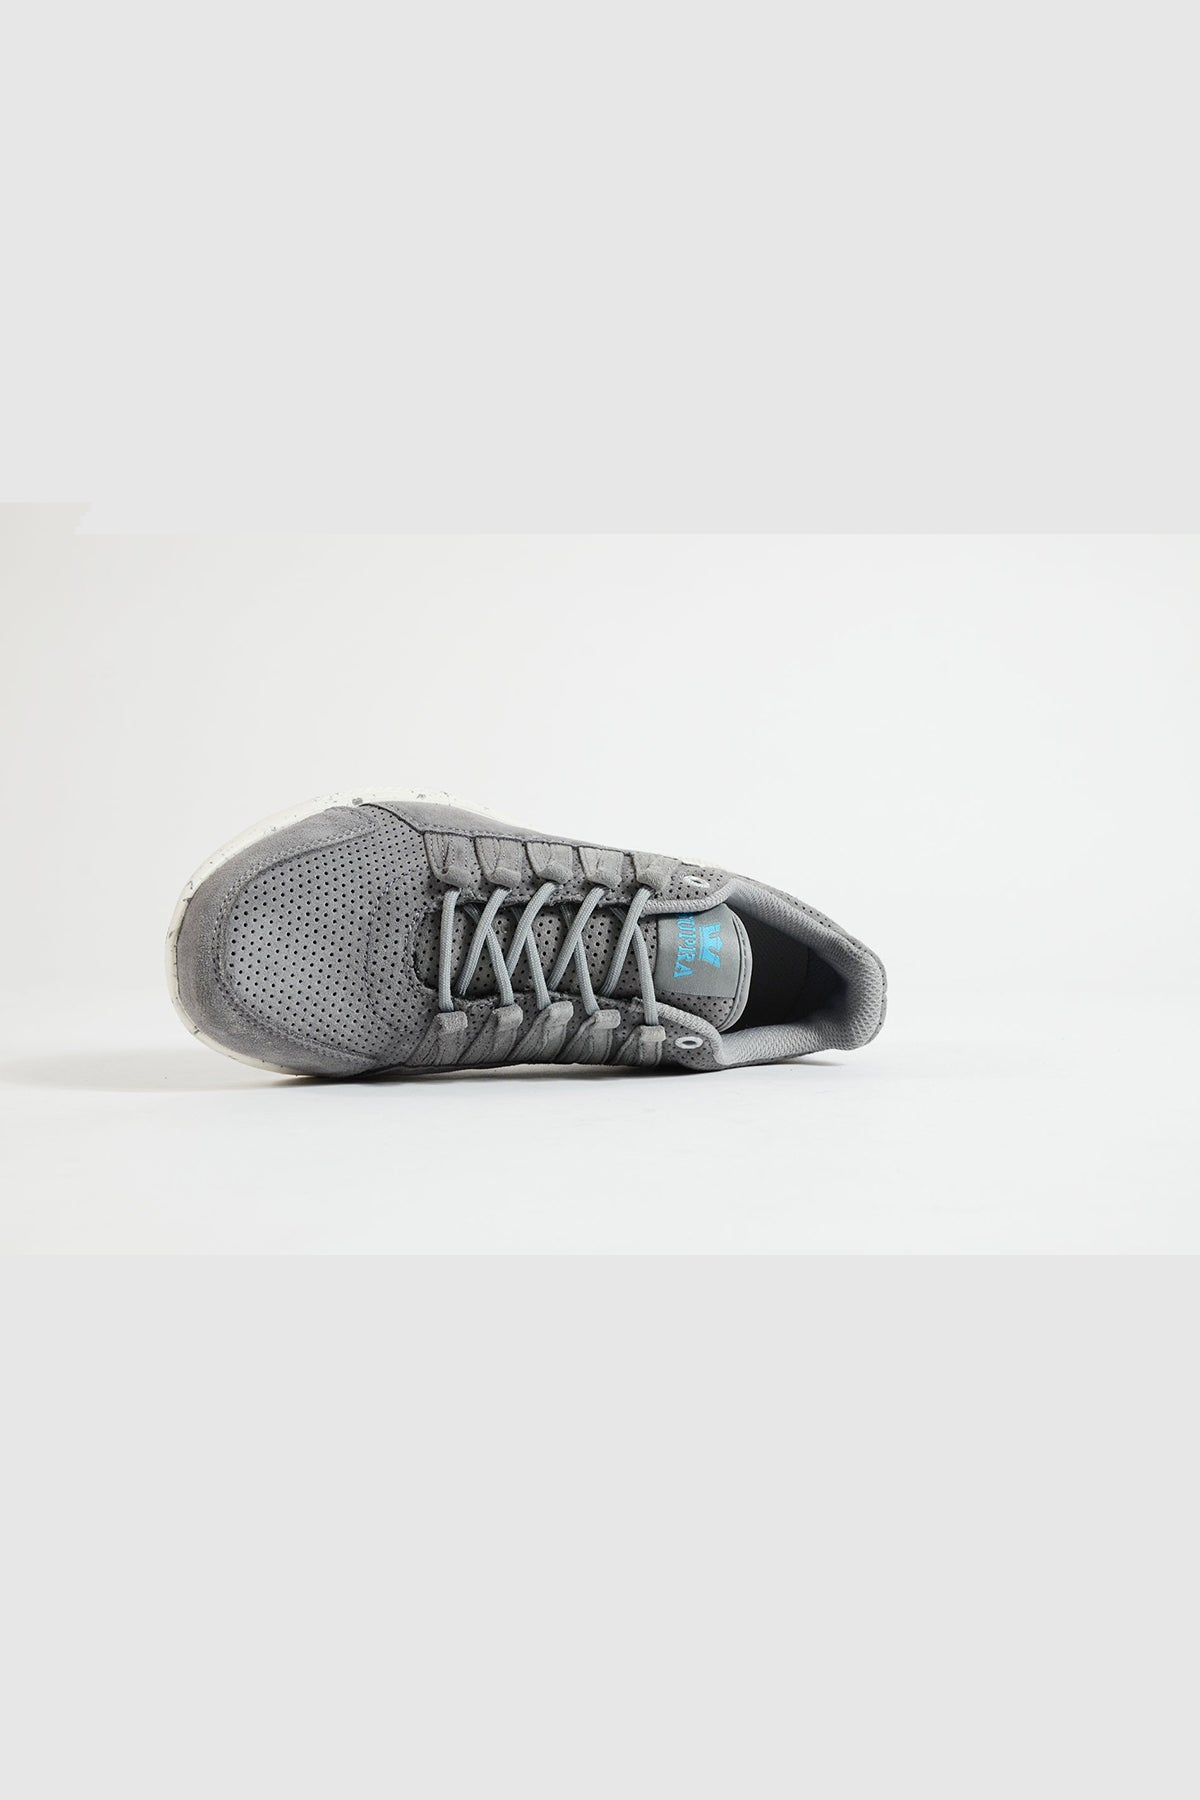 Supra - Owen Lx (Estate Grey/ Speckle)